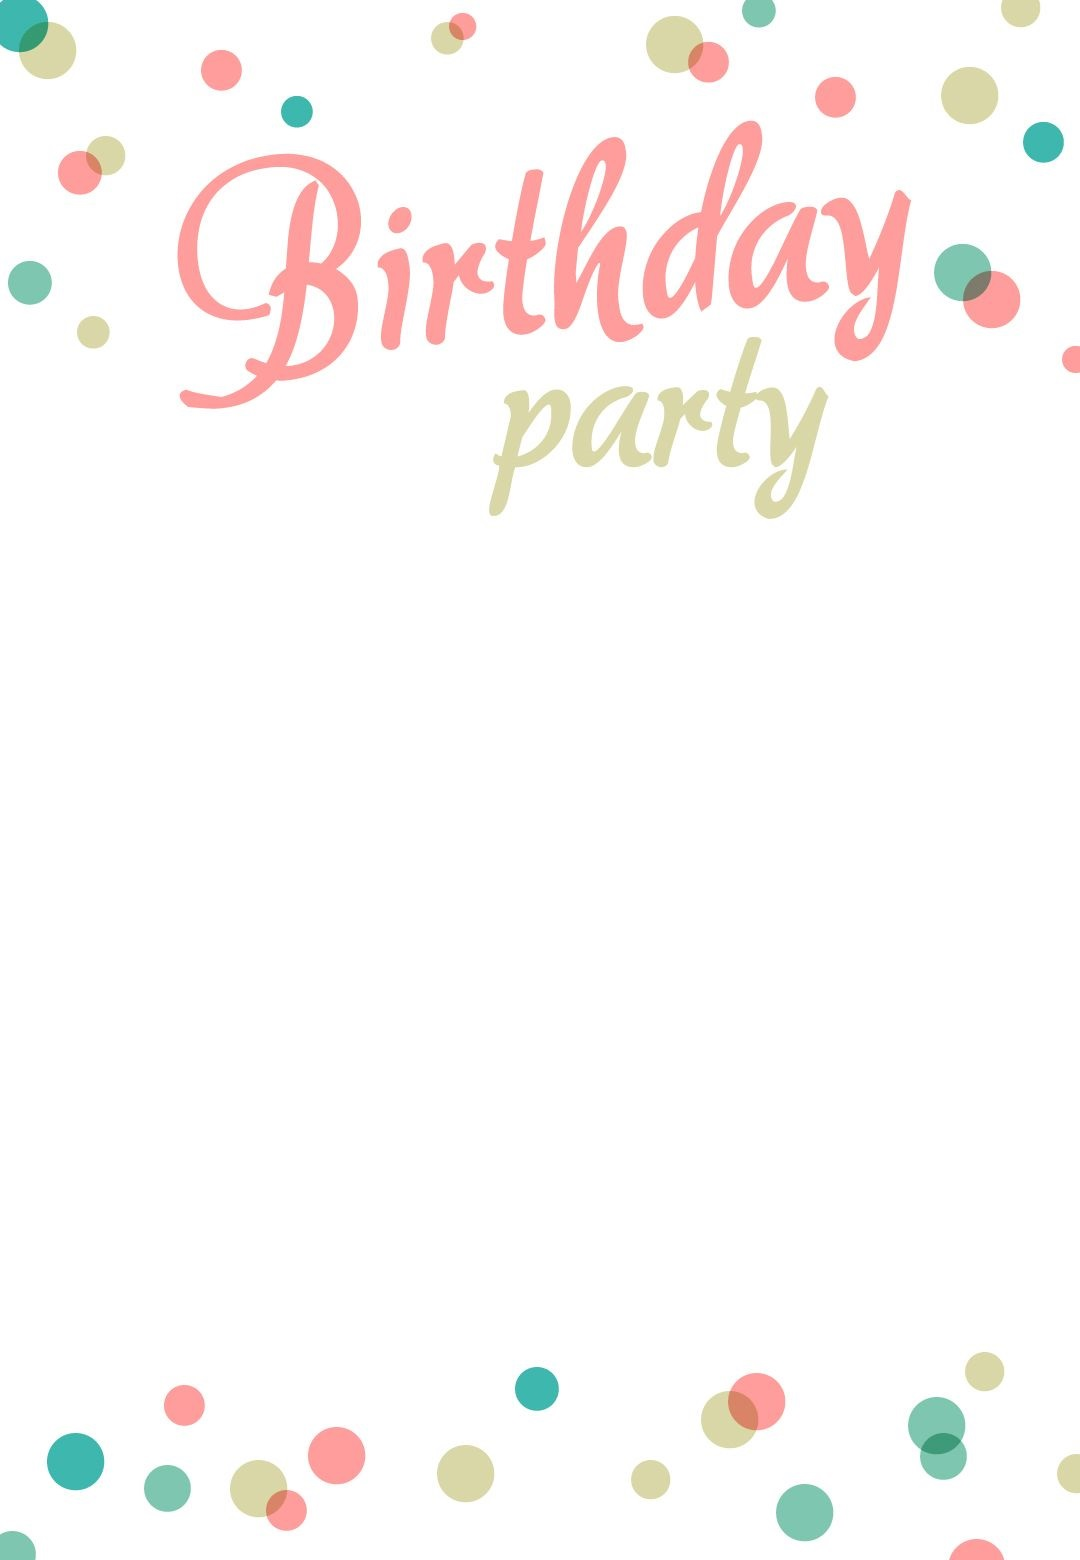 007 Wonderful Birthday Party Invitation Template Picture  Templates Google Doc 80th Free Download OnlineFull